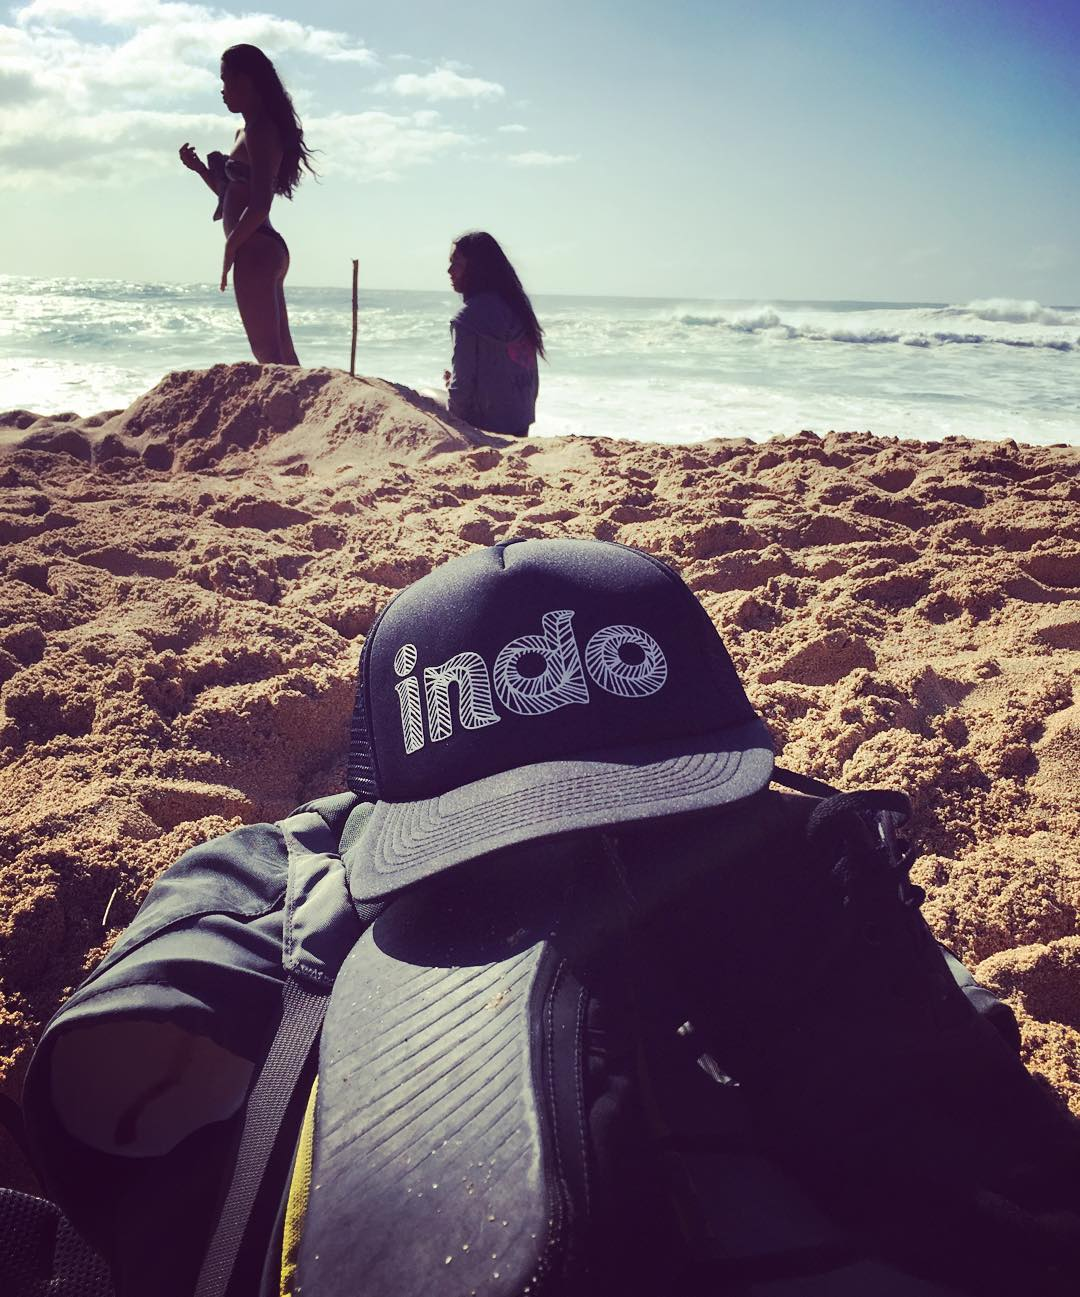 Getting to #Waimea Bay last week to watch the #Eddie contest with 25,000 other people was an adventure to say the least...that included renting an underpowered Moto-scooter just like the last time in #INDO